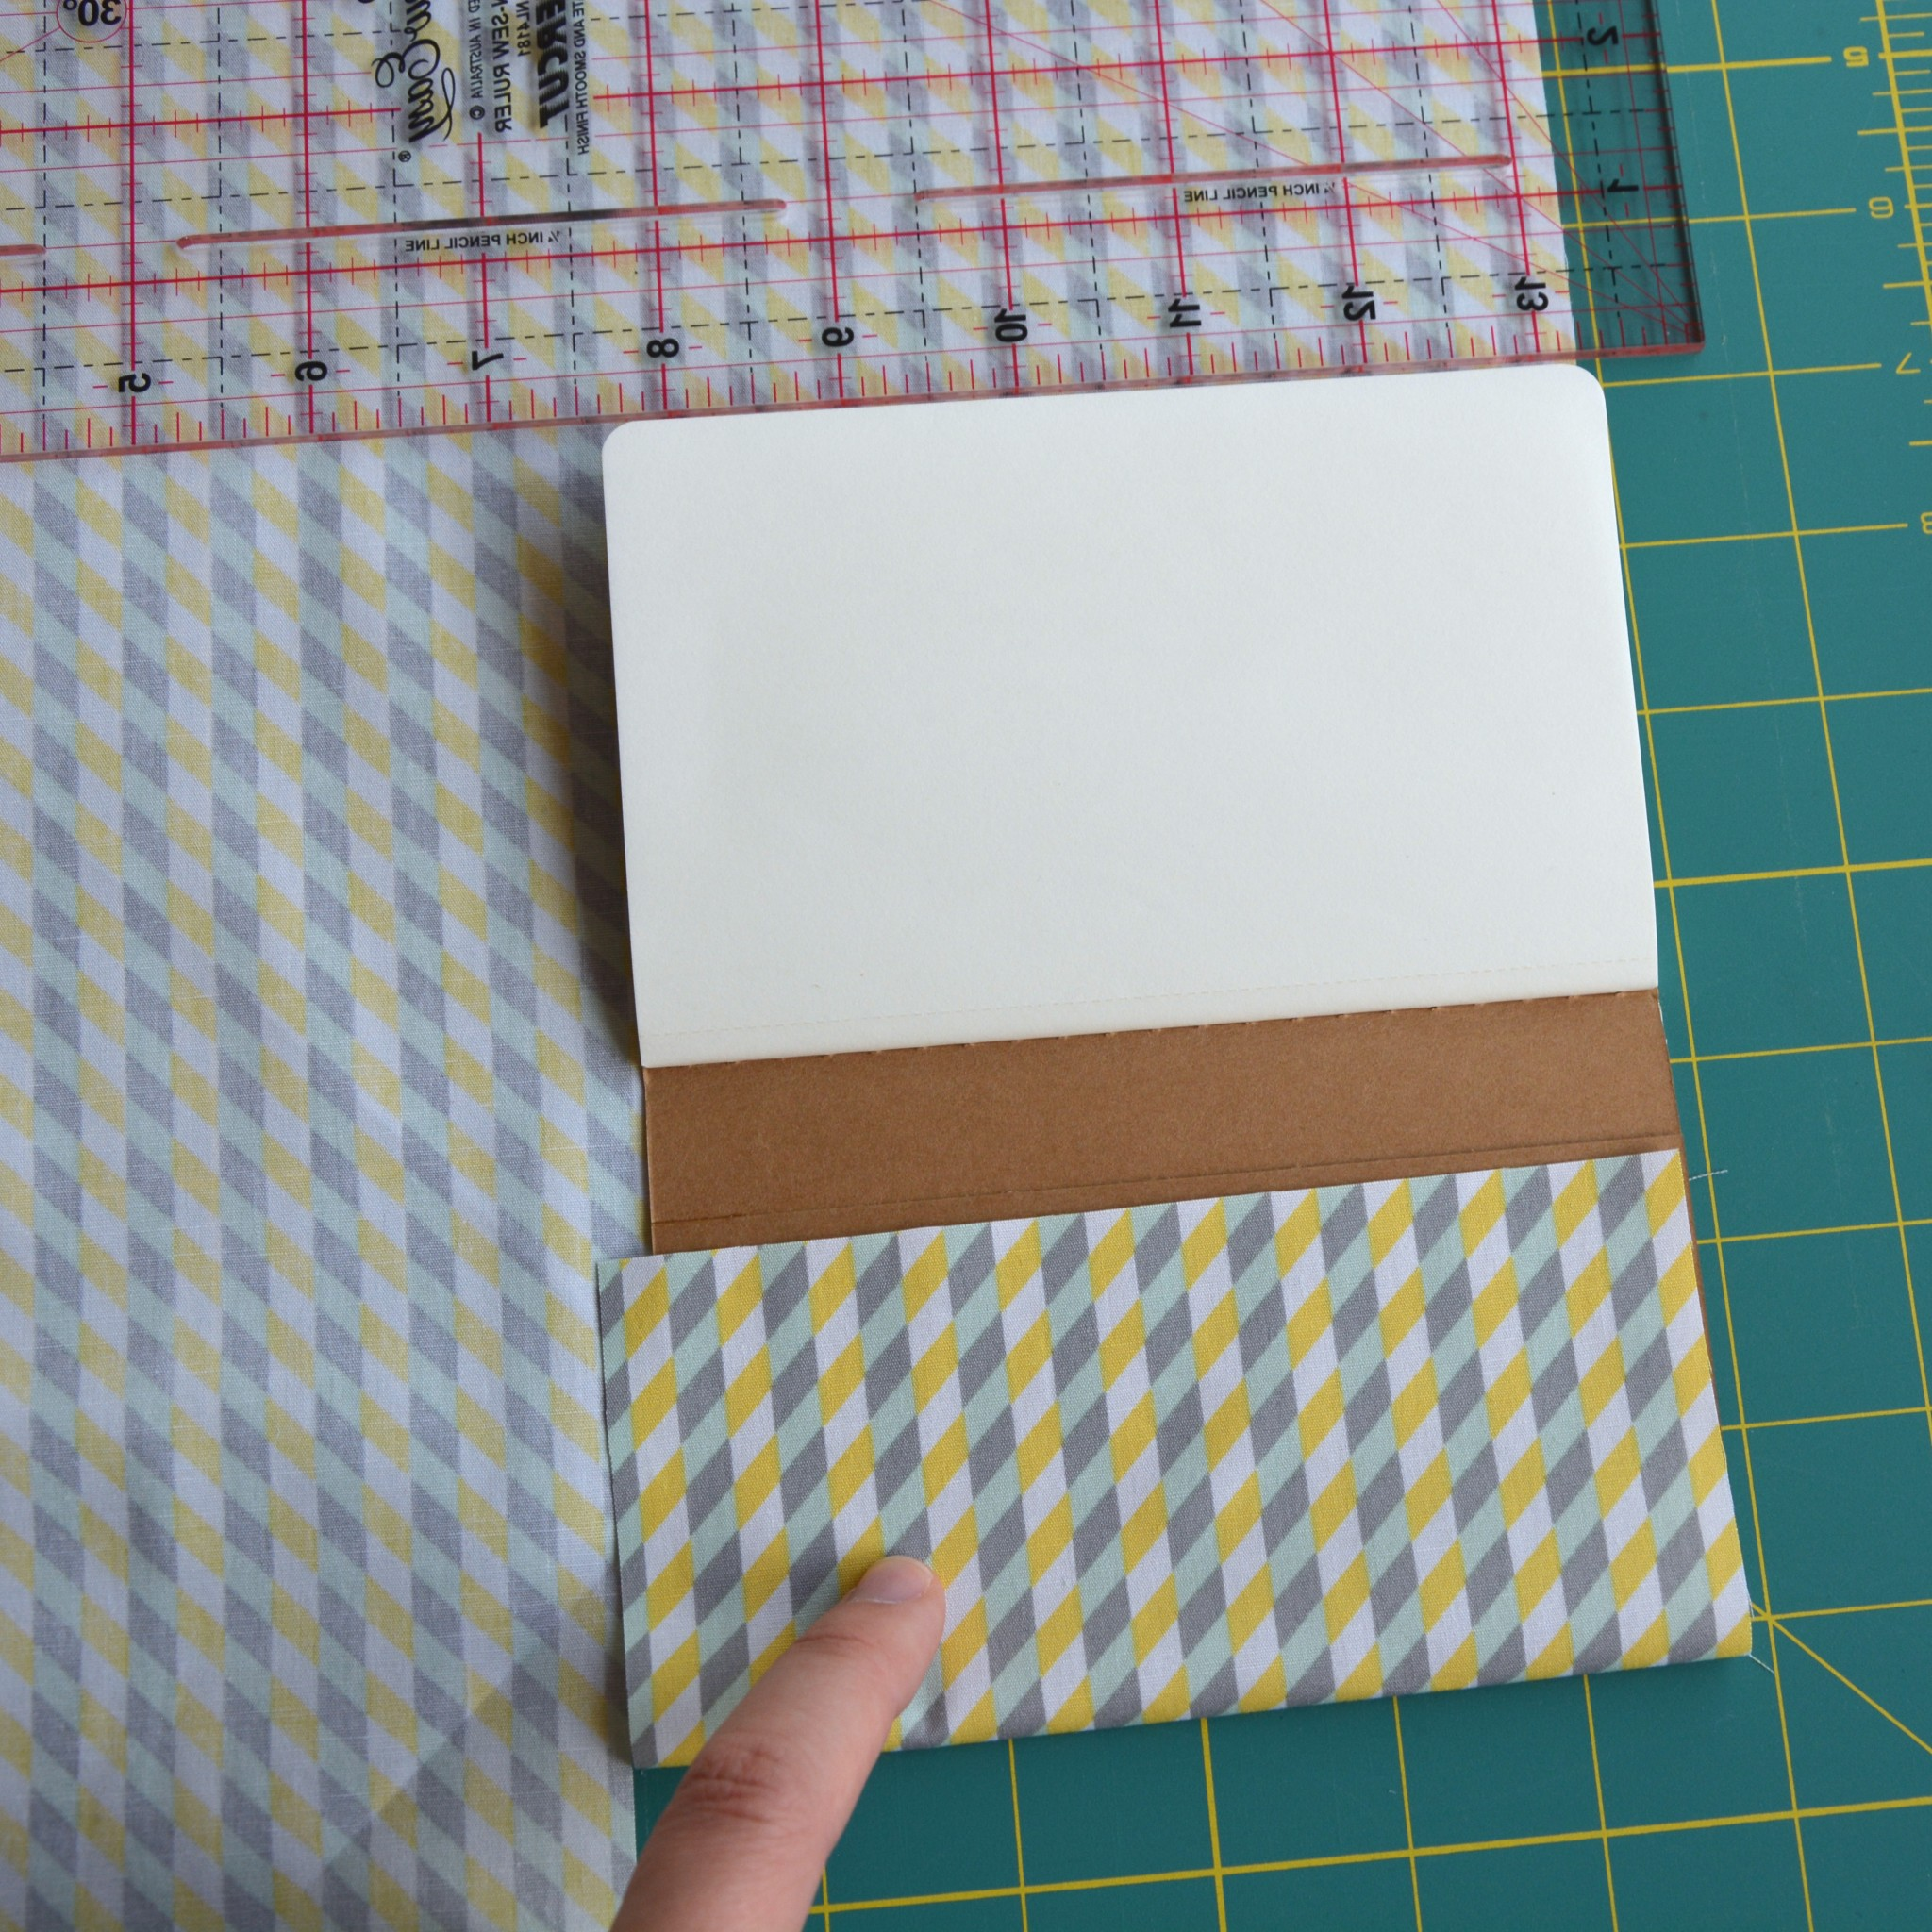 Measuring the fabric for the notebook